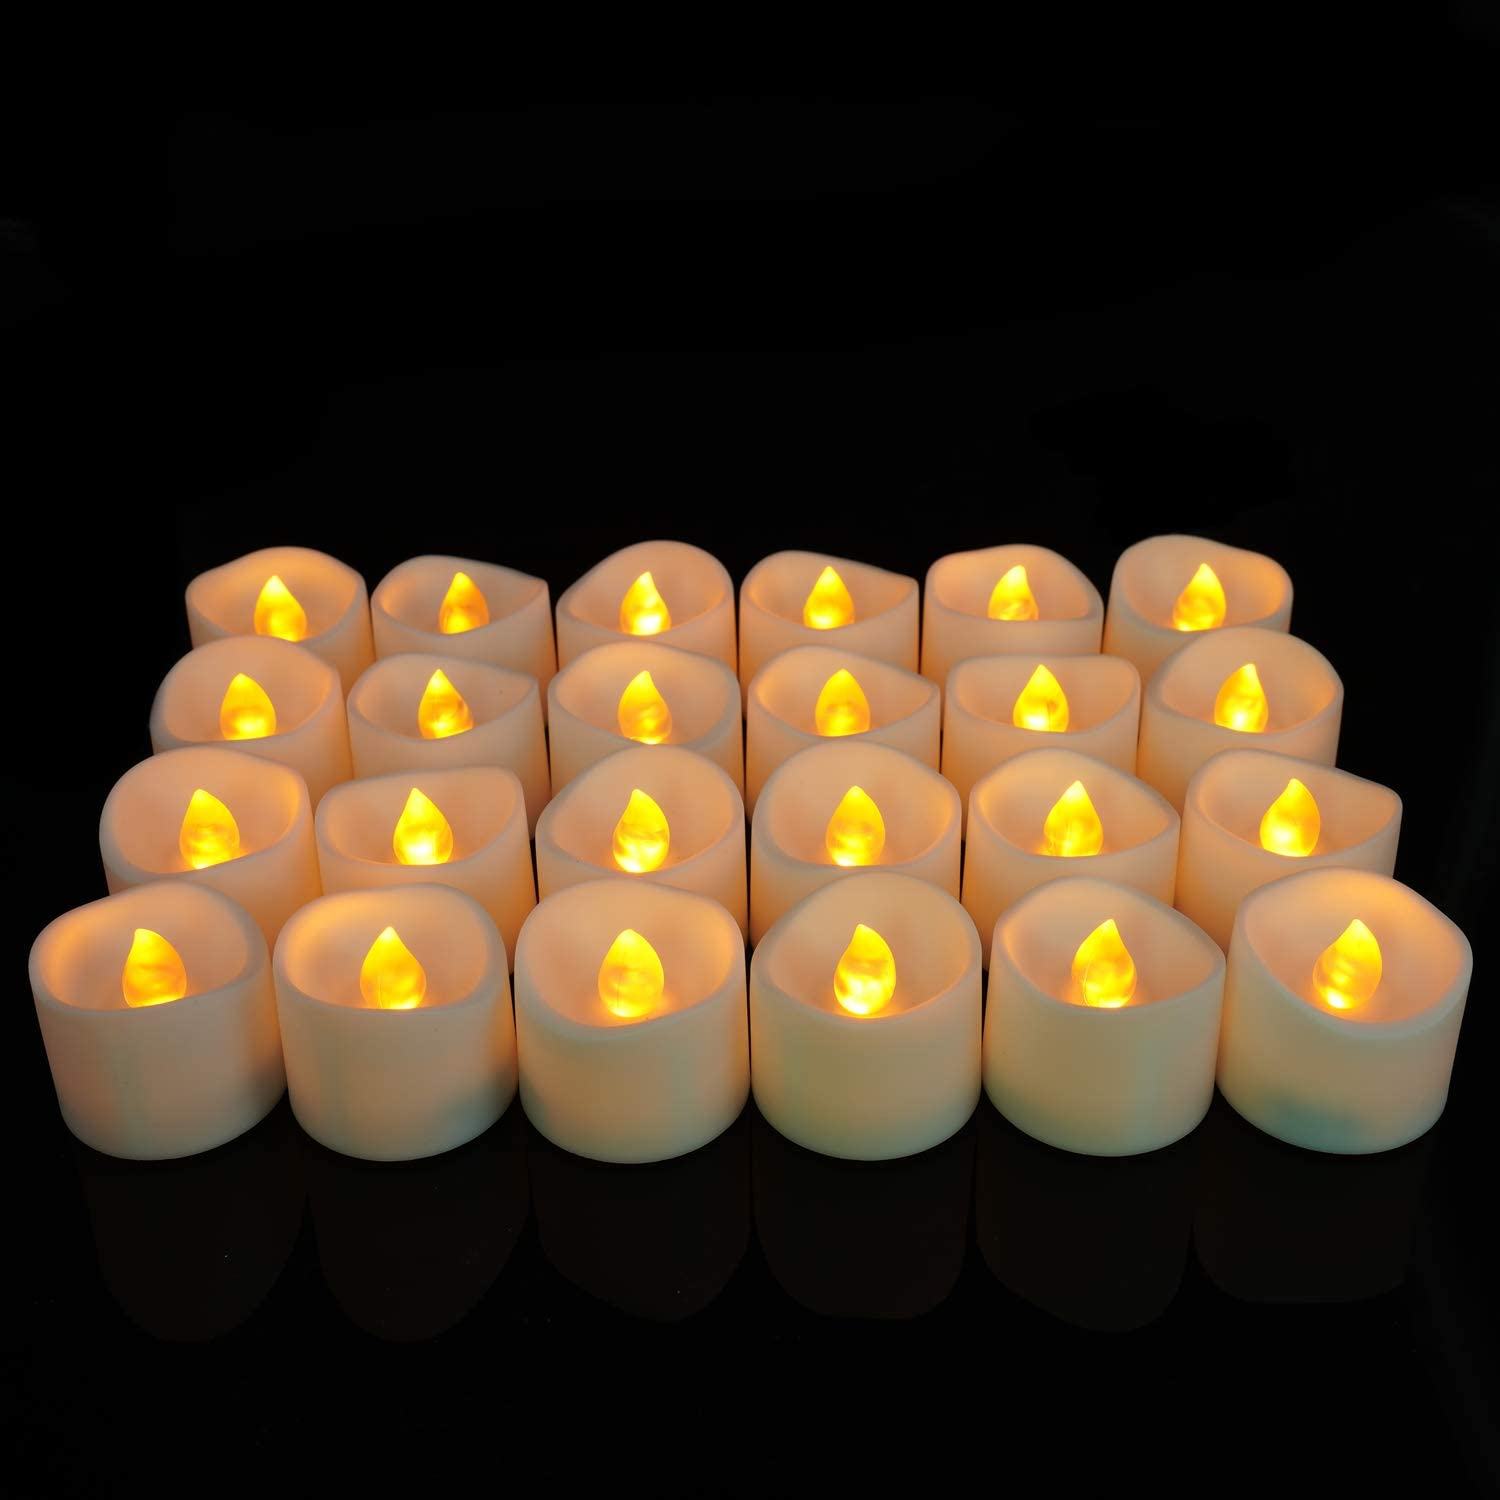 Electric Fake Candle in Warm White and Wave Open Homemory Realistic and Bright Flickering Bulb Battery Operated Flameless LED Tea Light for Seasonal /& Festival Celebration Pack of 12